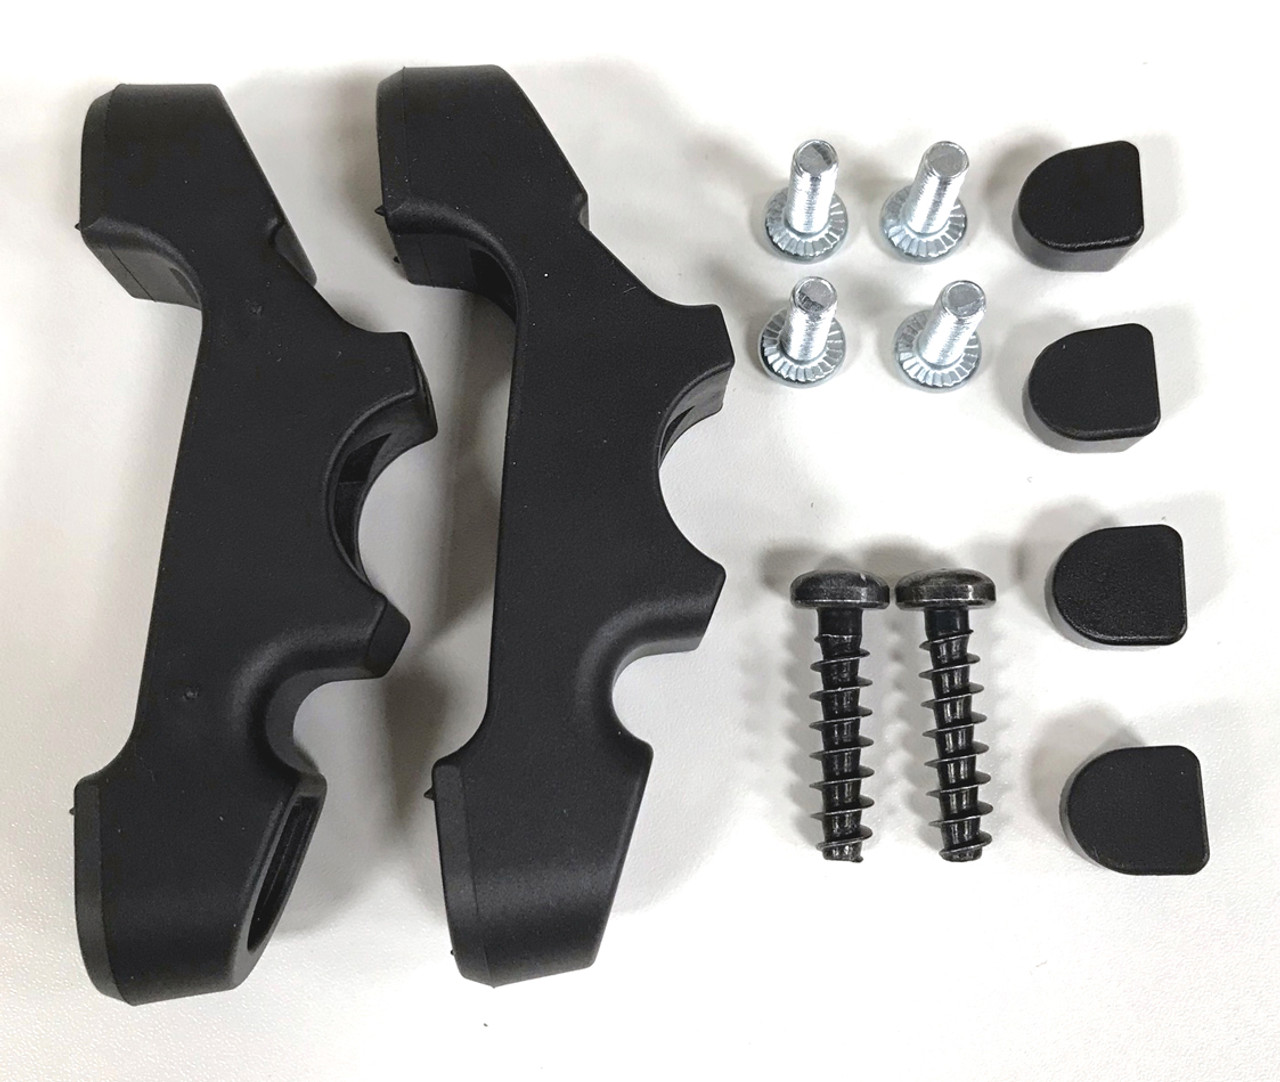 Rohde & Grahl - Xenium Duo back rubber mounting kit